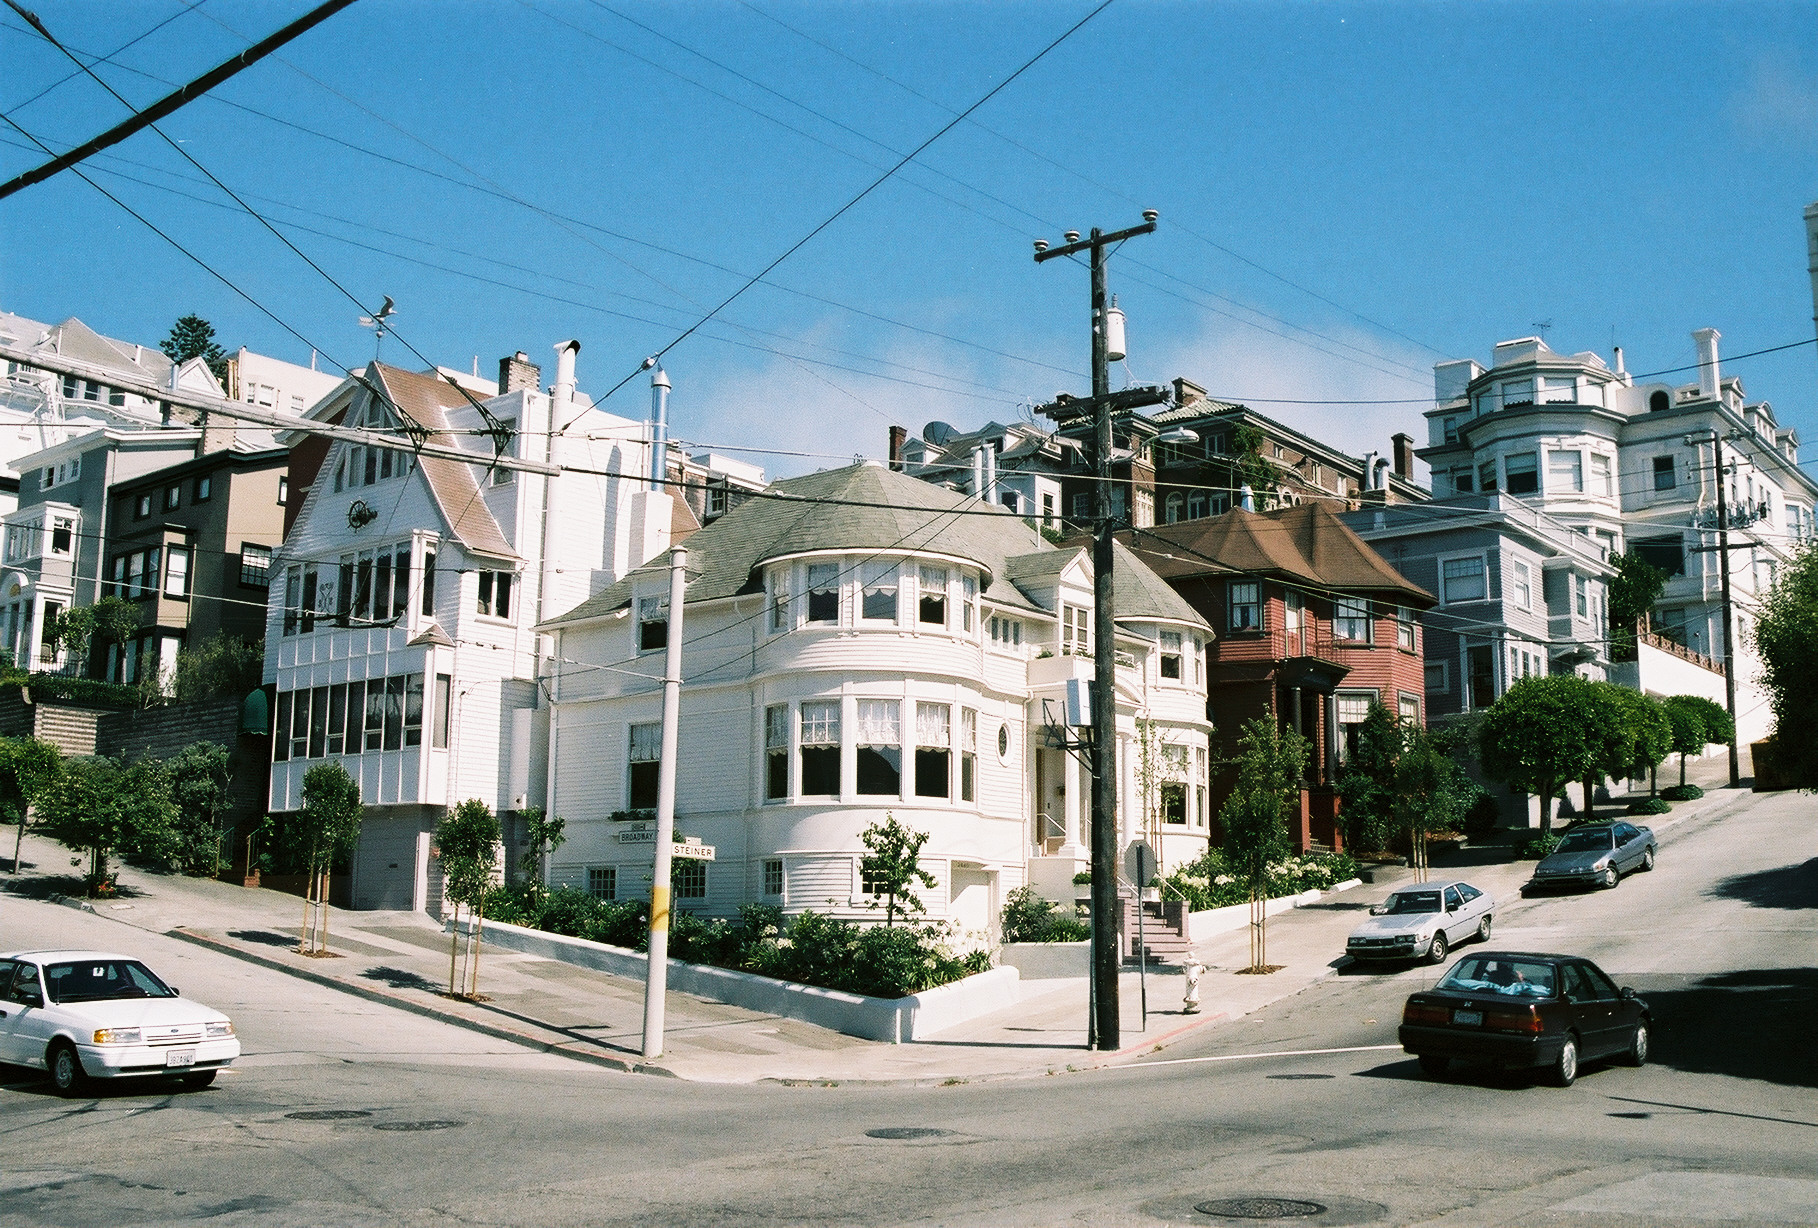 2640 Steiner Street, built in 1893 and featured in the film